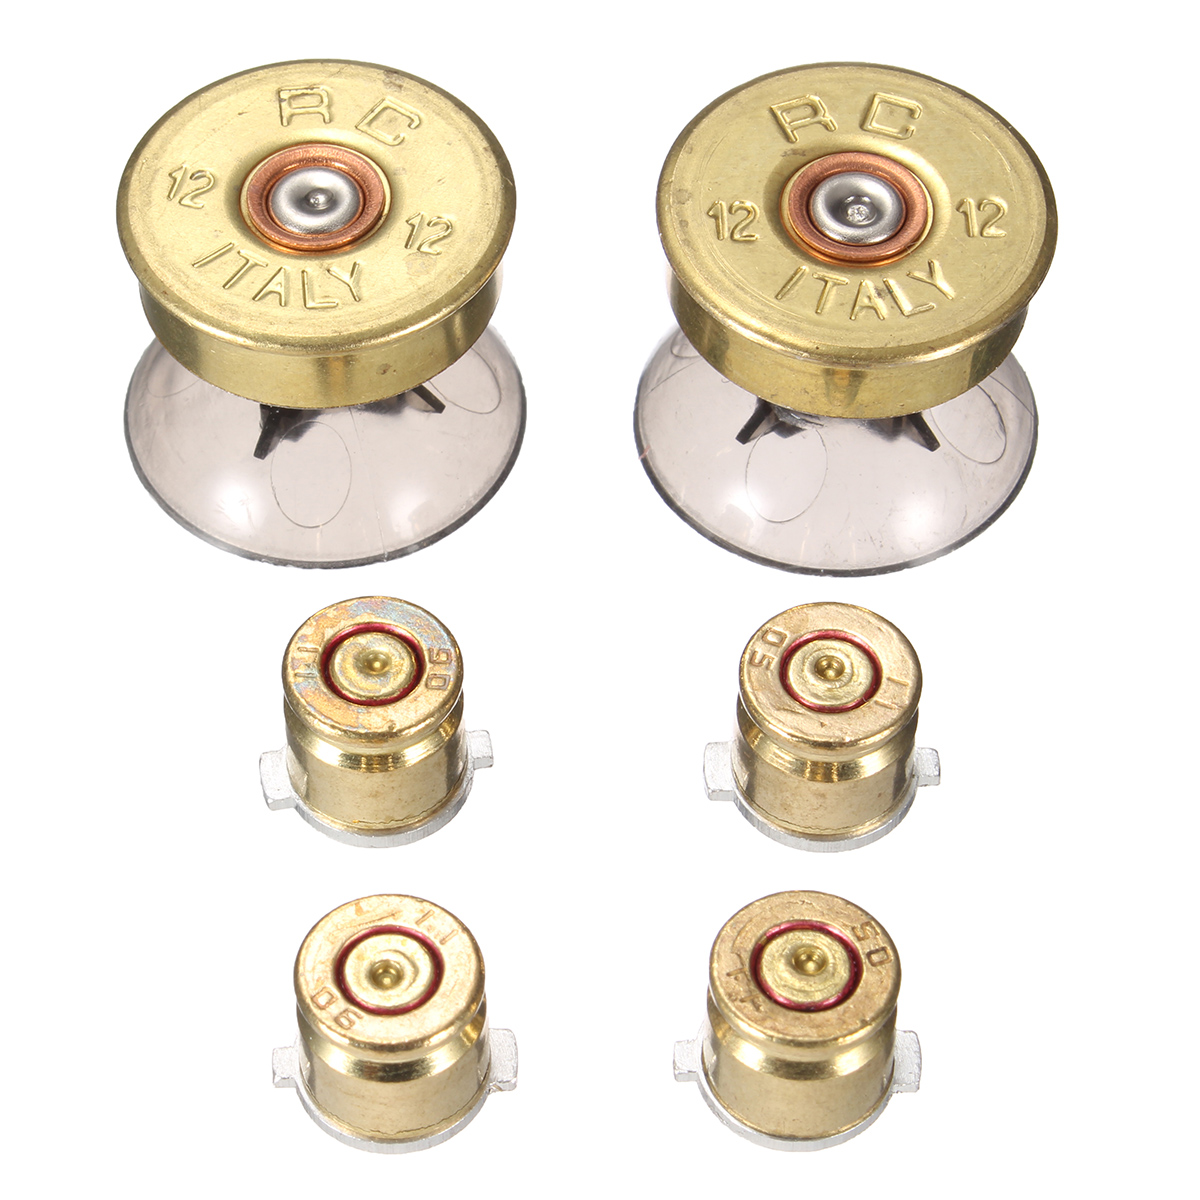 A Set Replacement Metal Bullet Buttons Thumbstick Cap Joystick Cover For Play Station 4 For PS4